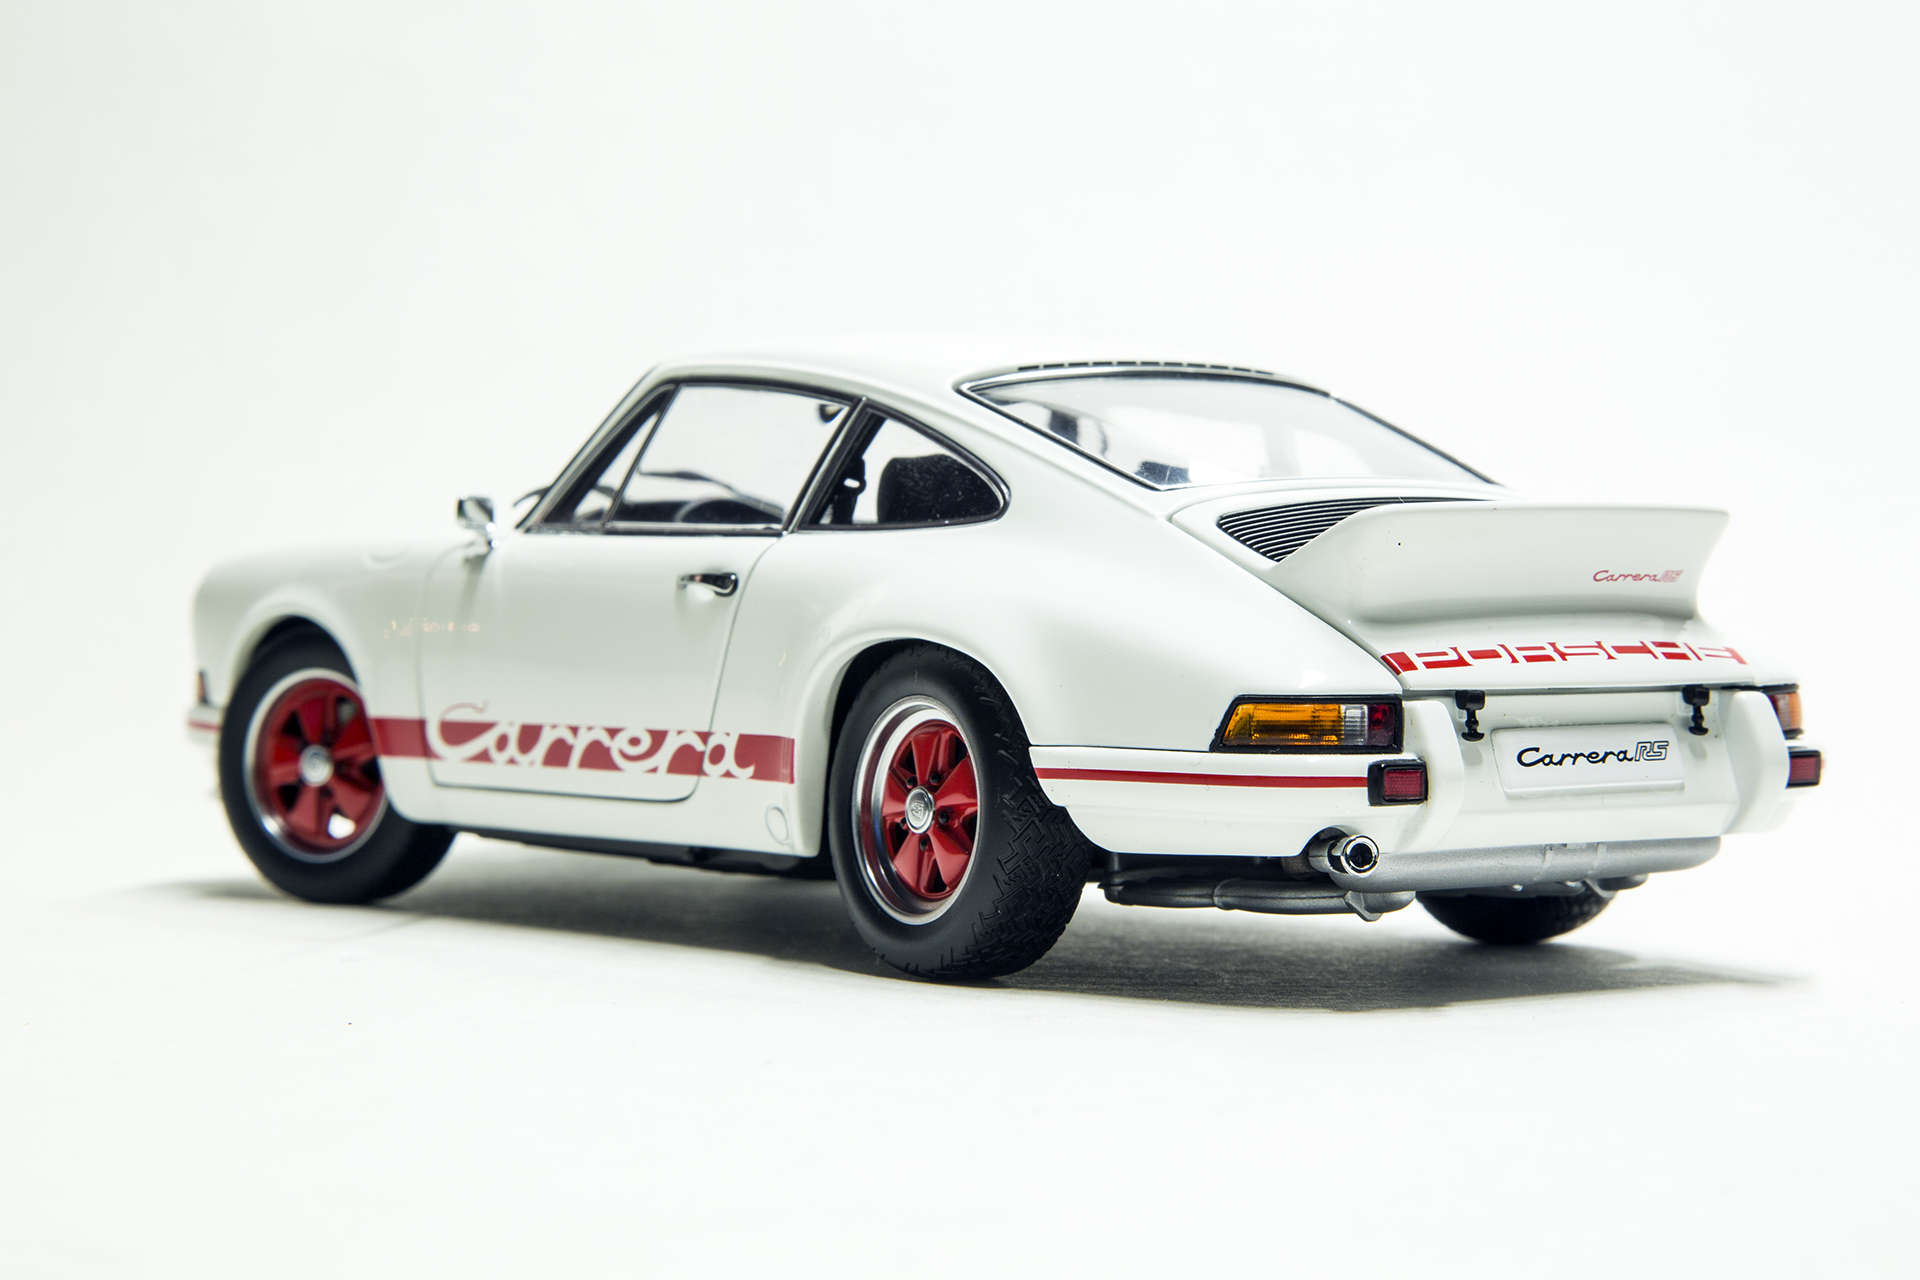 18diecast 118 scale diecast model cars porsche 911 date purchased 2012 price paid 130 usd vanachro Choice Image